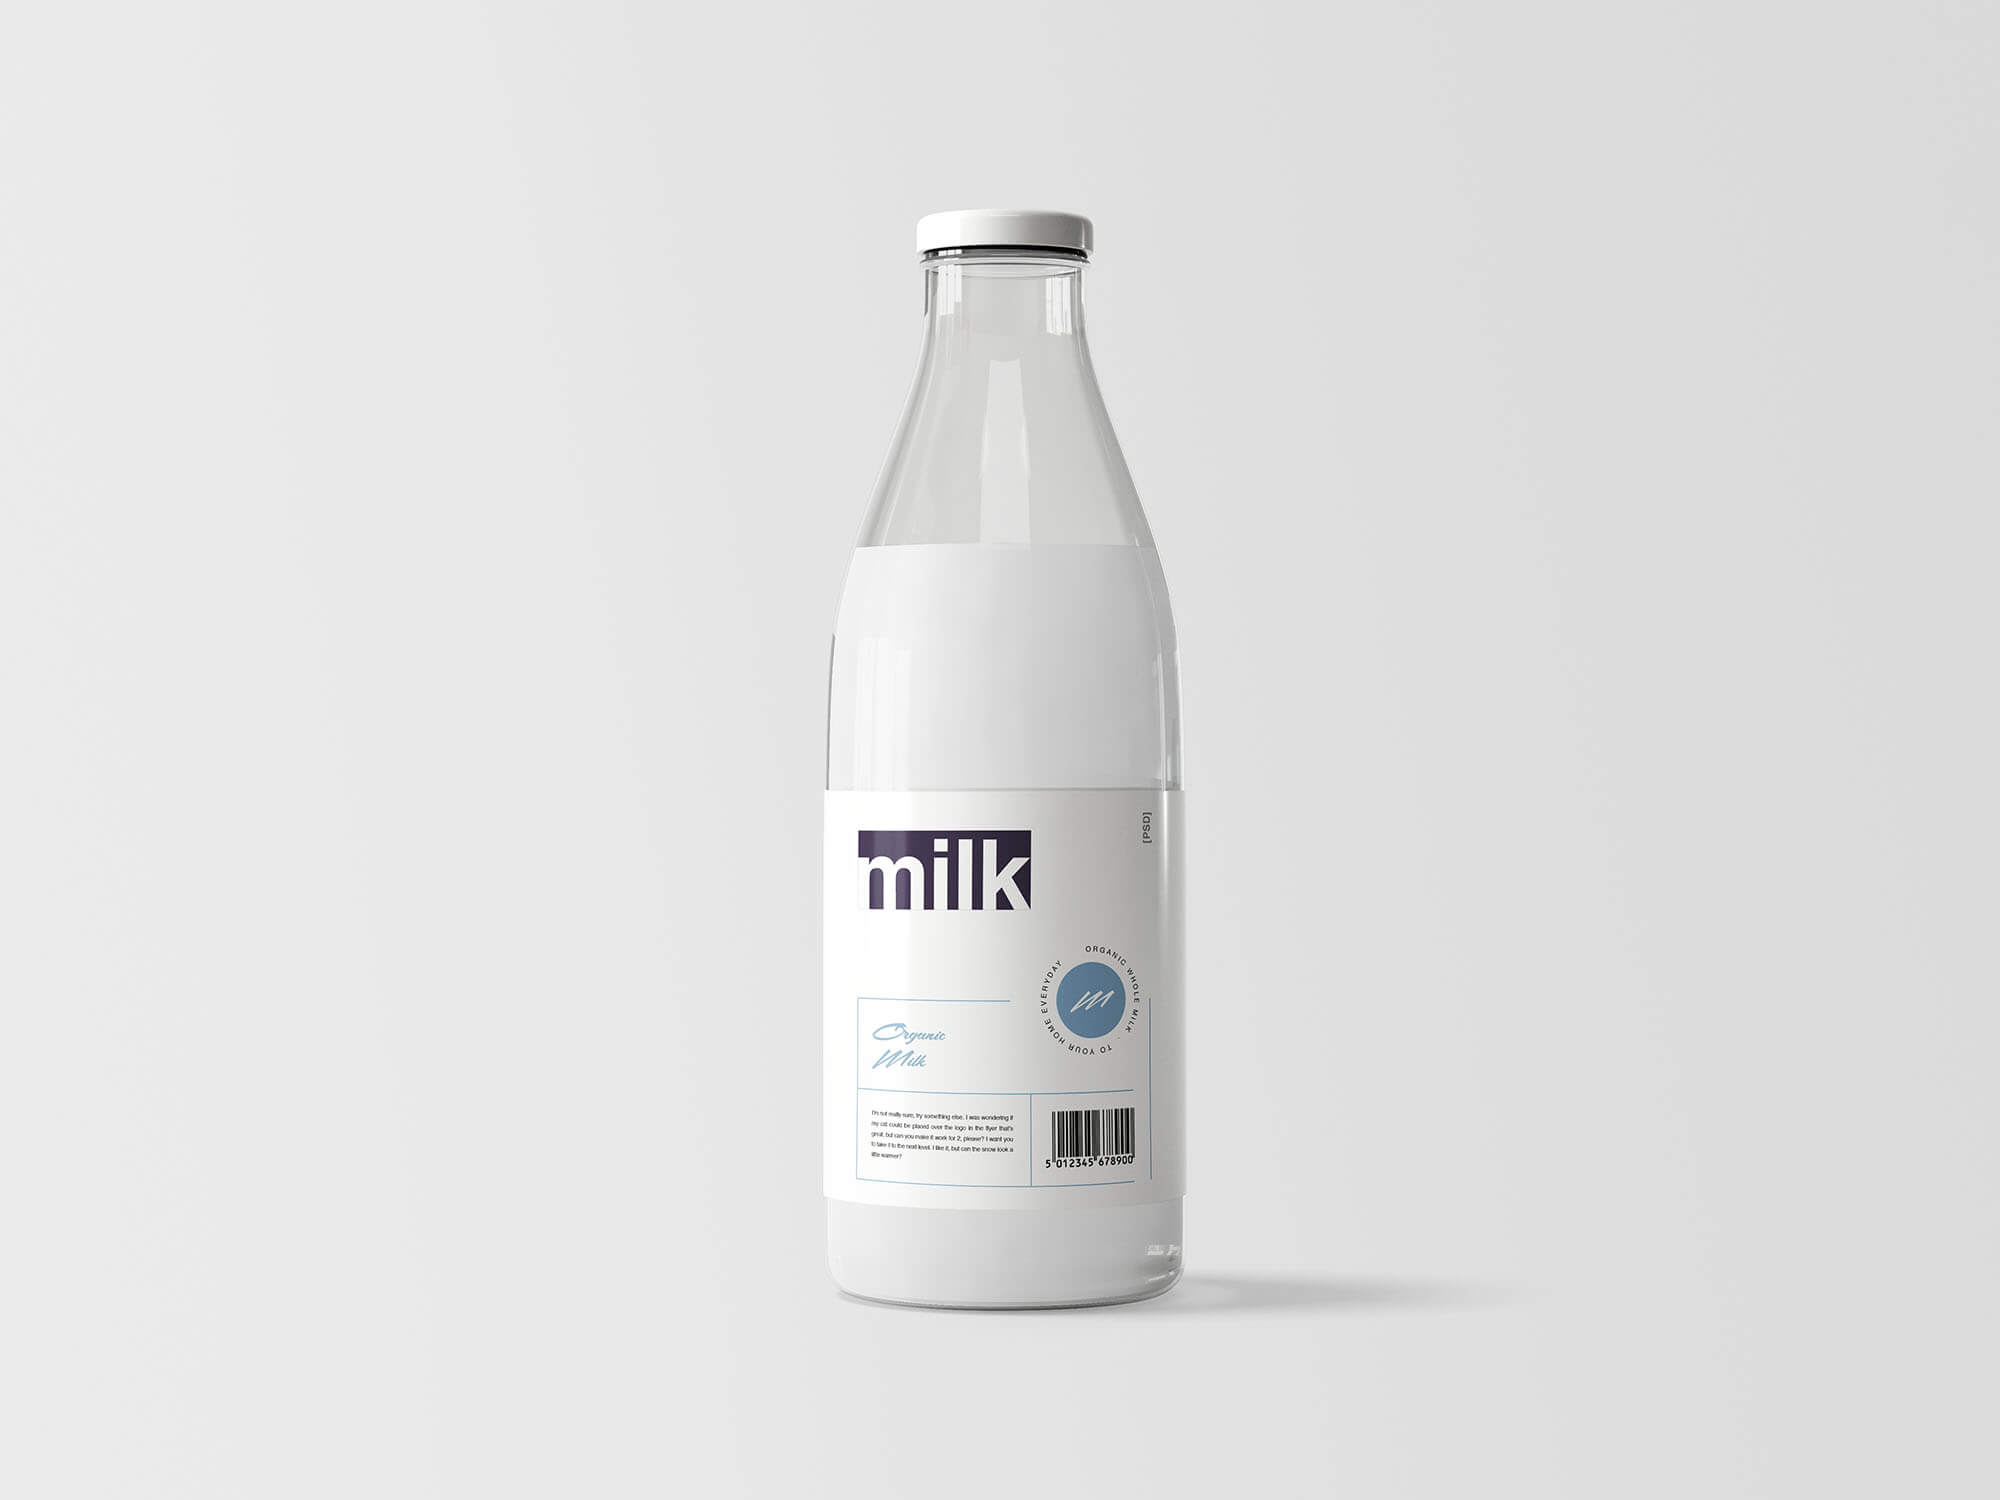 Free Modern And Clean Milk Bottle Mockup PSD Template